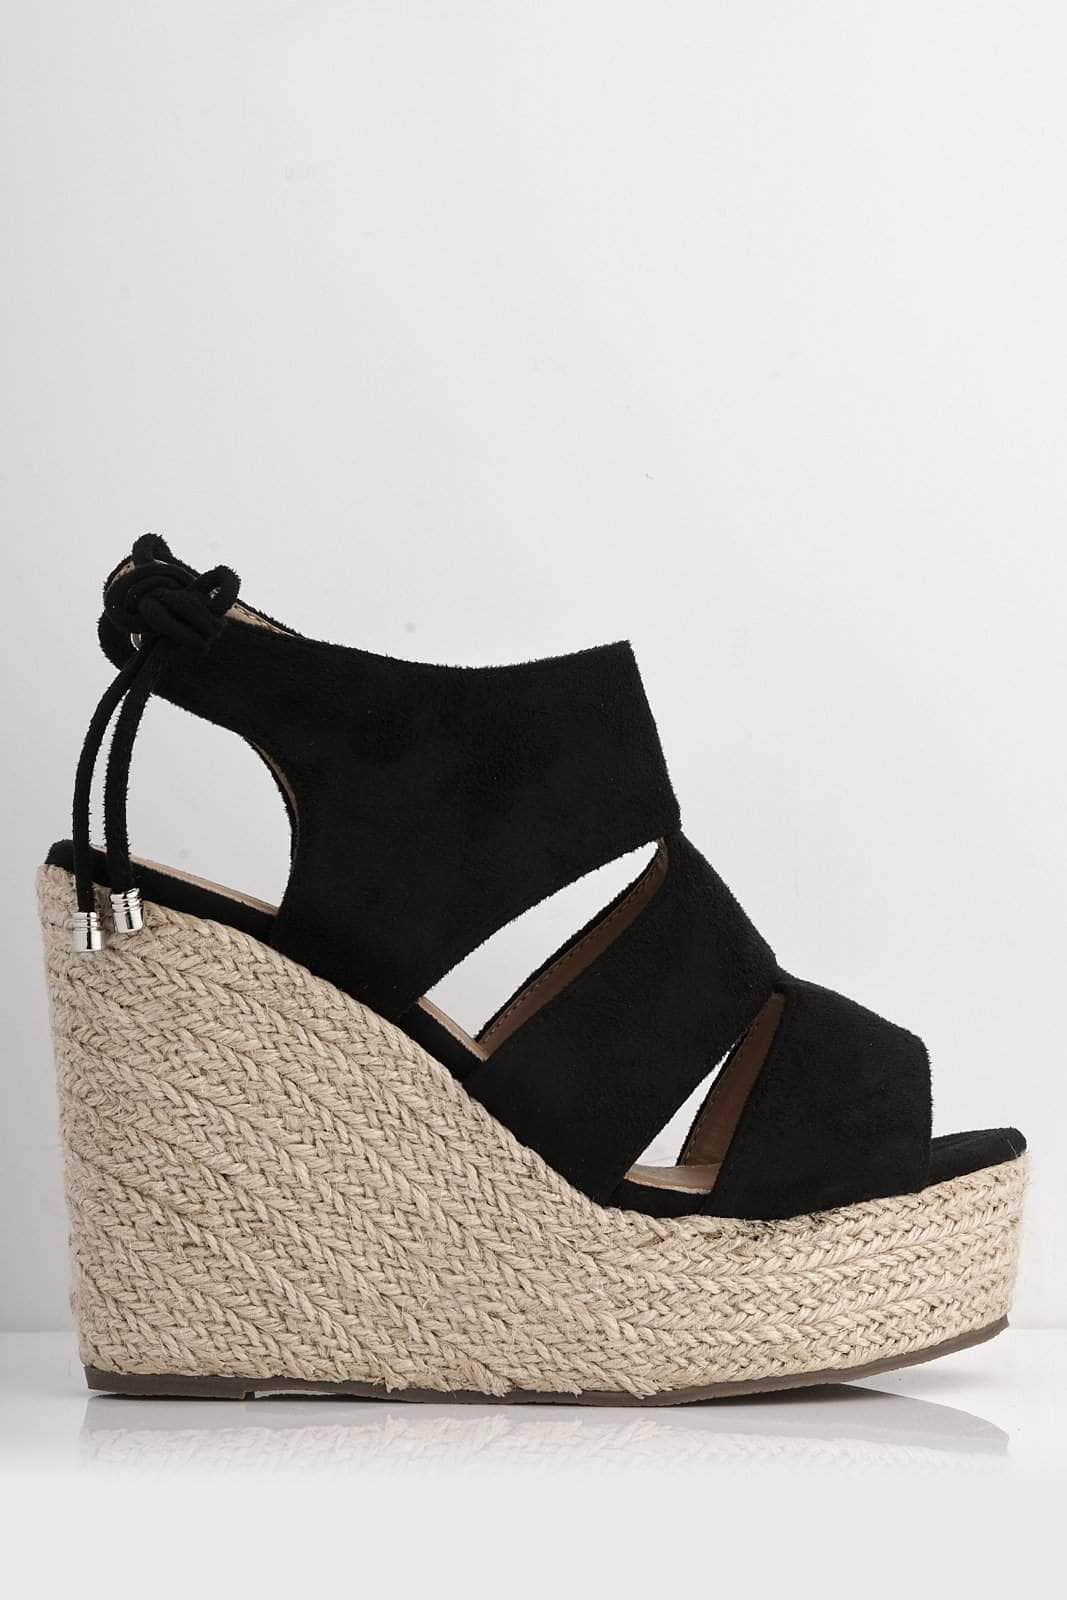 Black Suede Cut Out Peep Toe Wedges